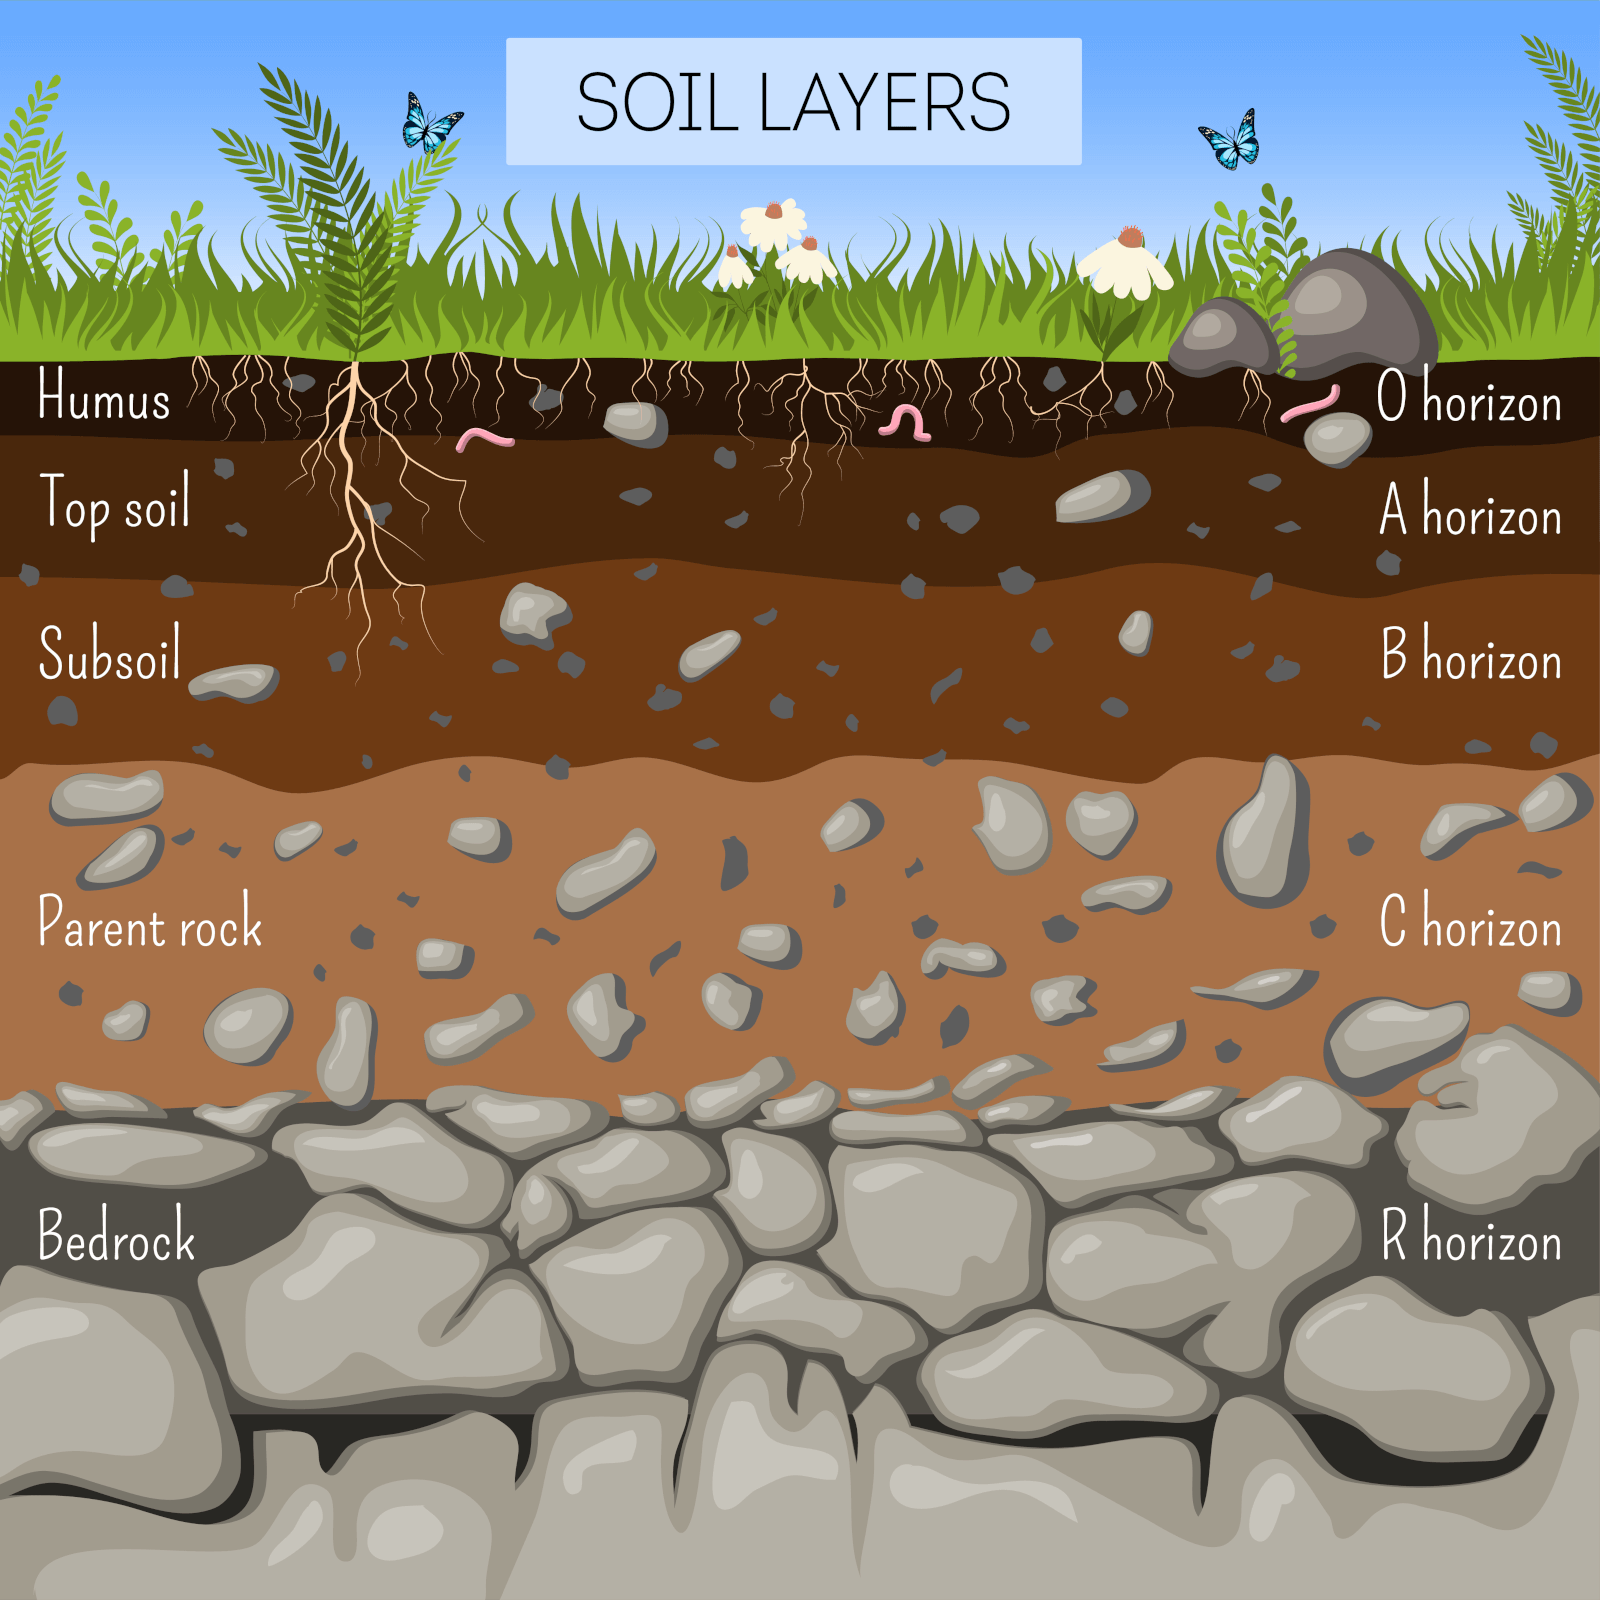 soil layers diagram